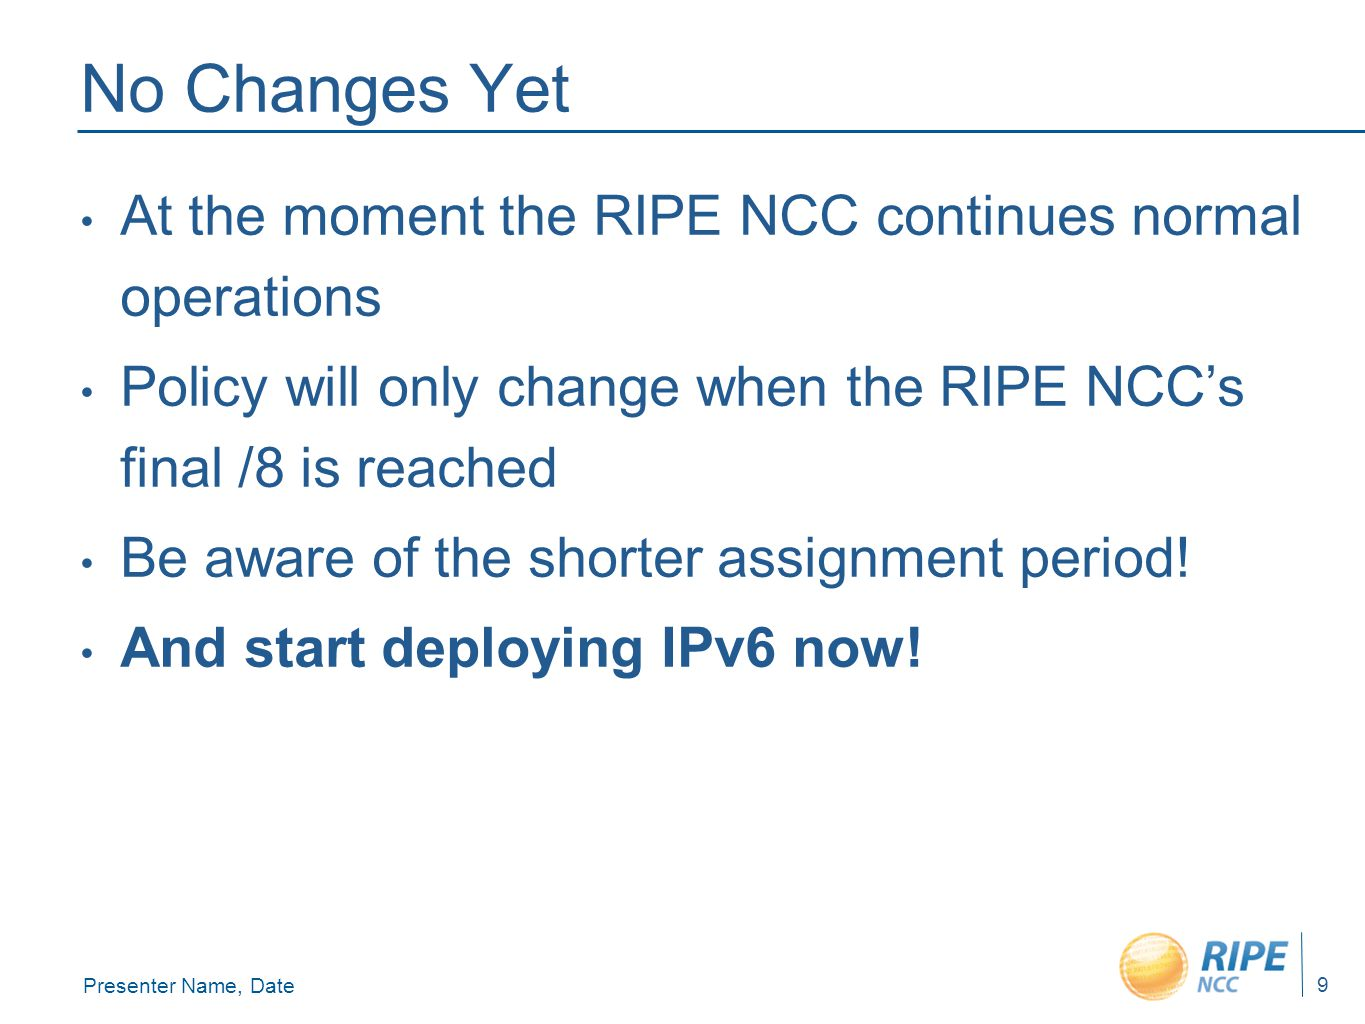 Presenter Name, Date 9 No Changes Yet At the moment the RIPE NCC continues normal operations Policy will only change when the RIPE NCC's final /8 is reached Be aware of the shorter assignment period.